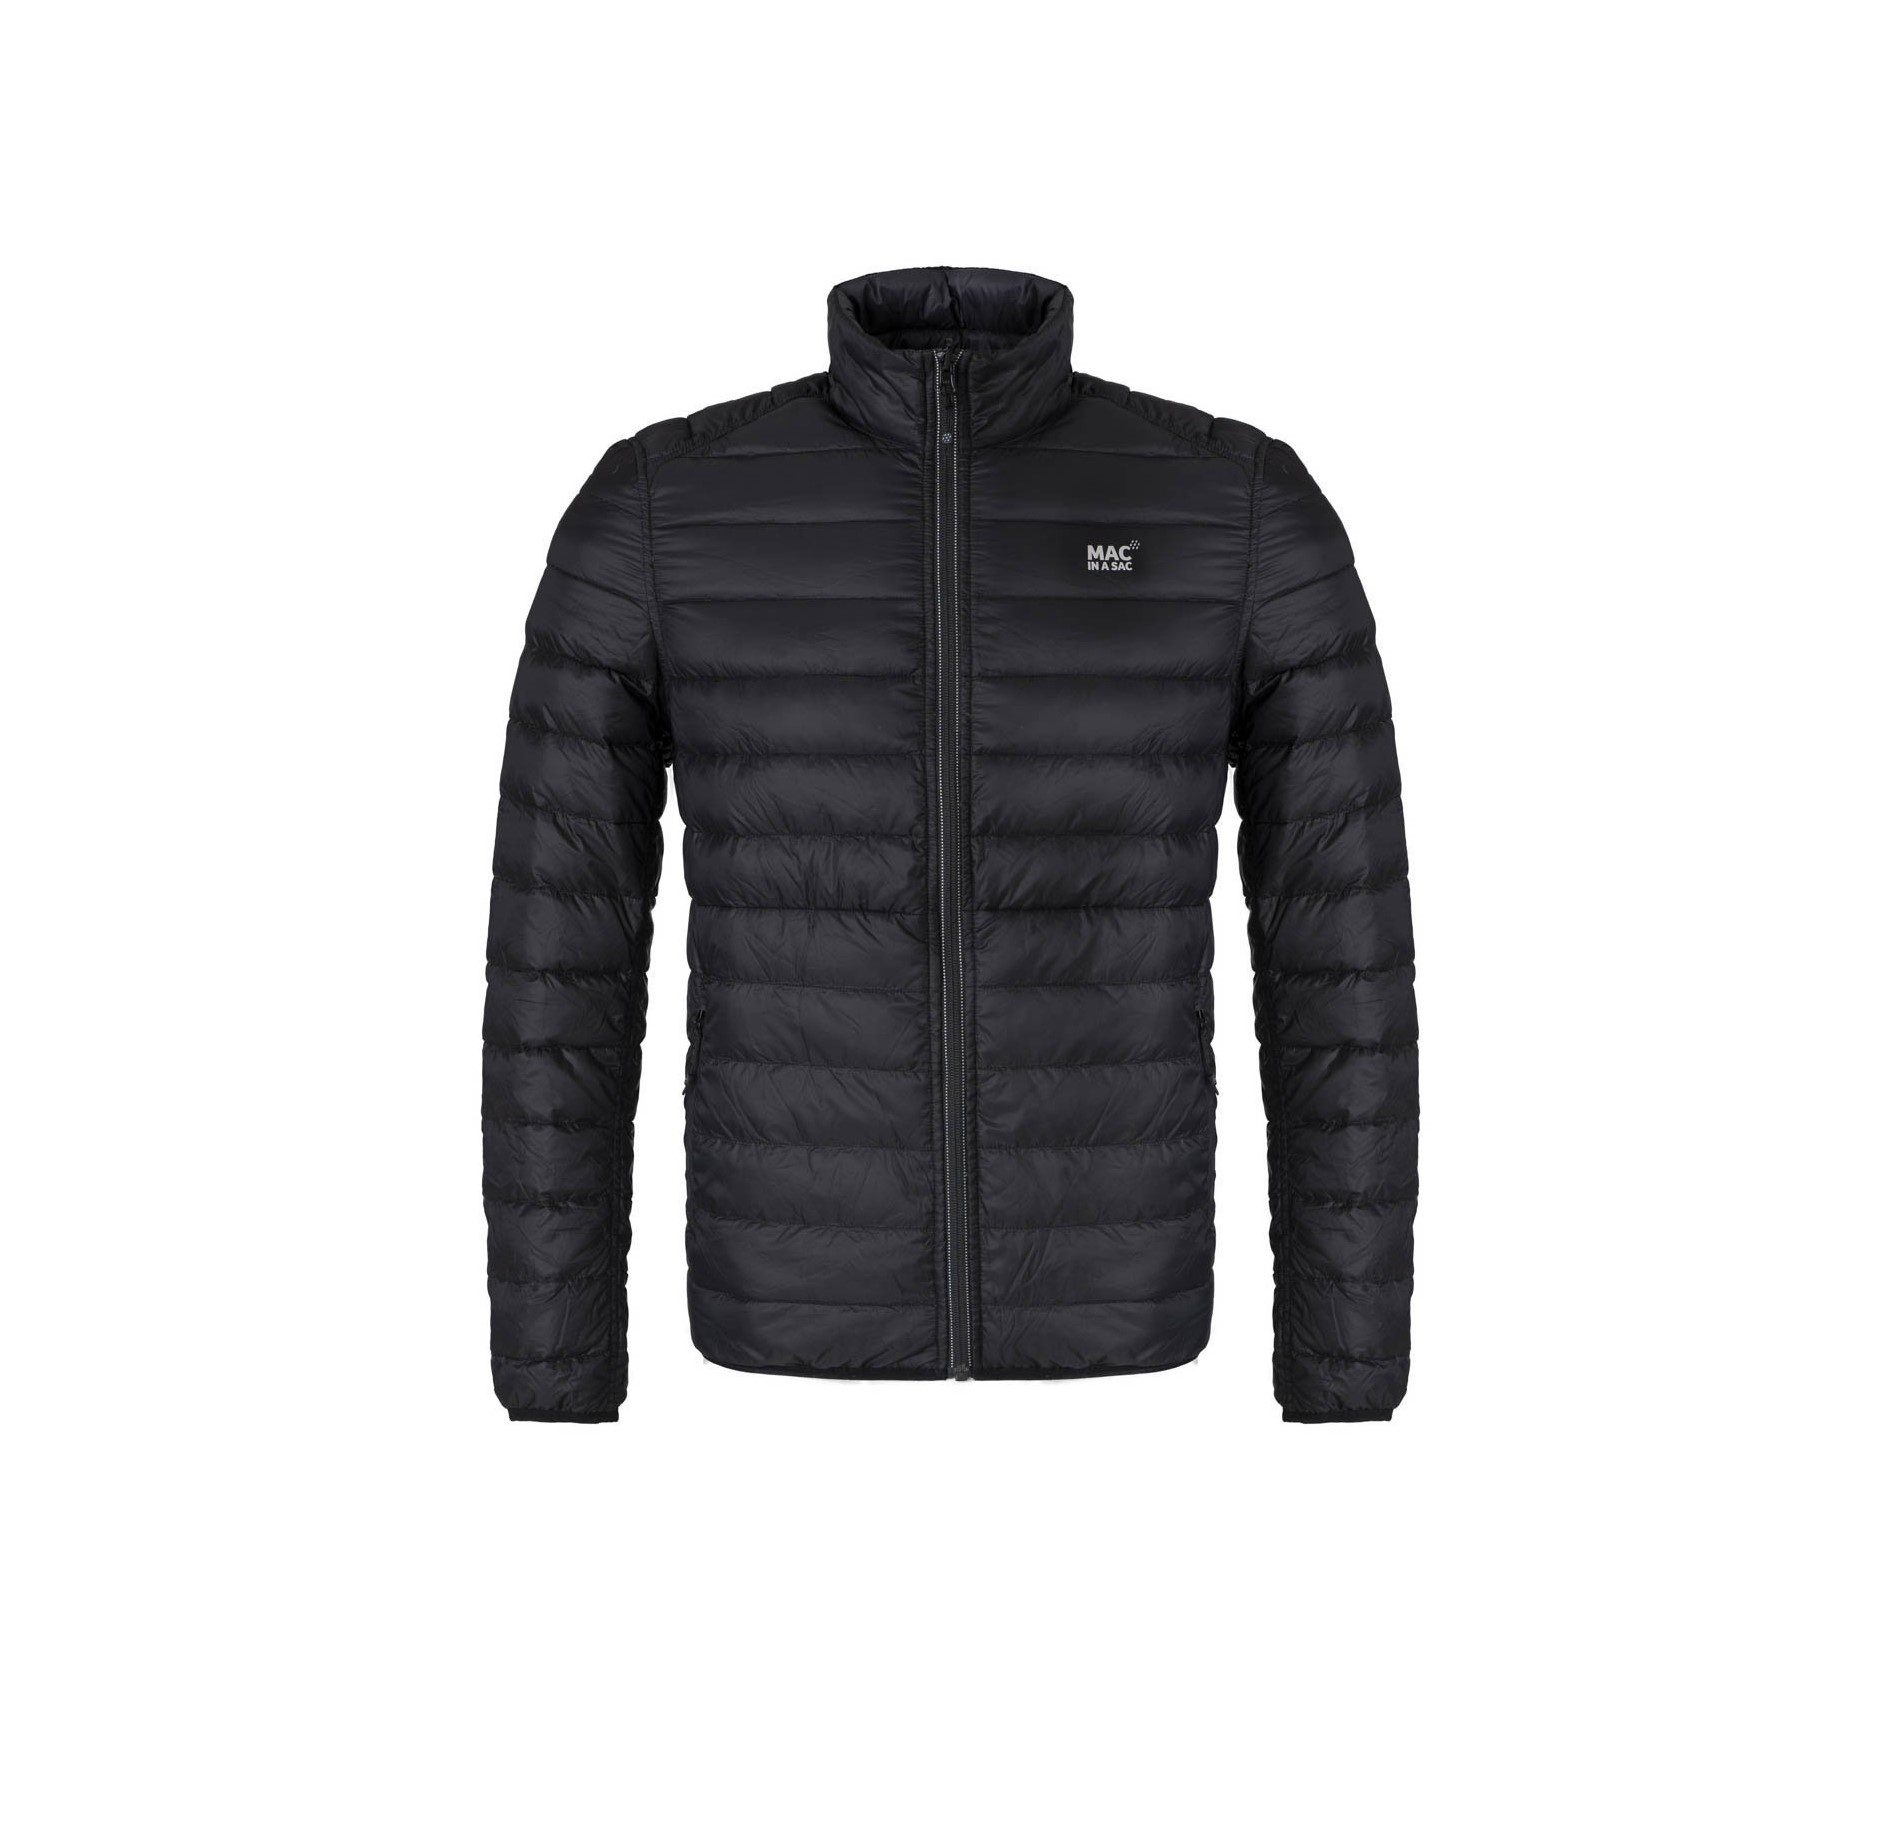 Target Dry Mens Polar Down Jacket - Black